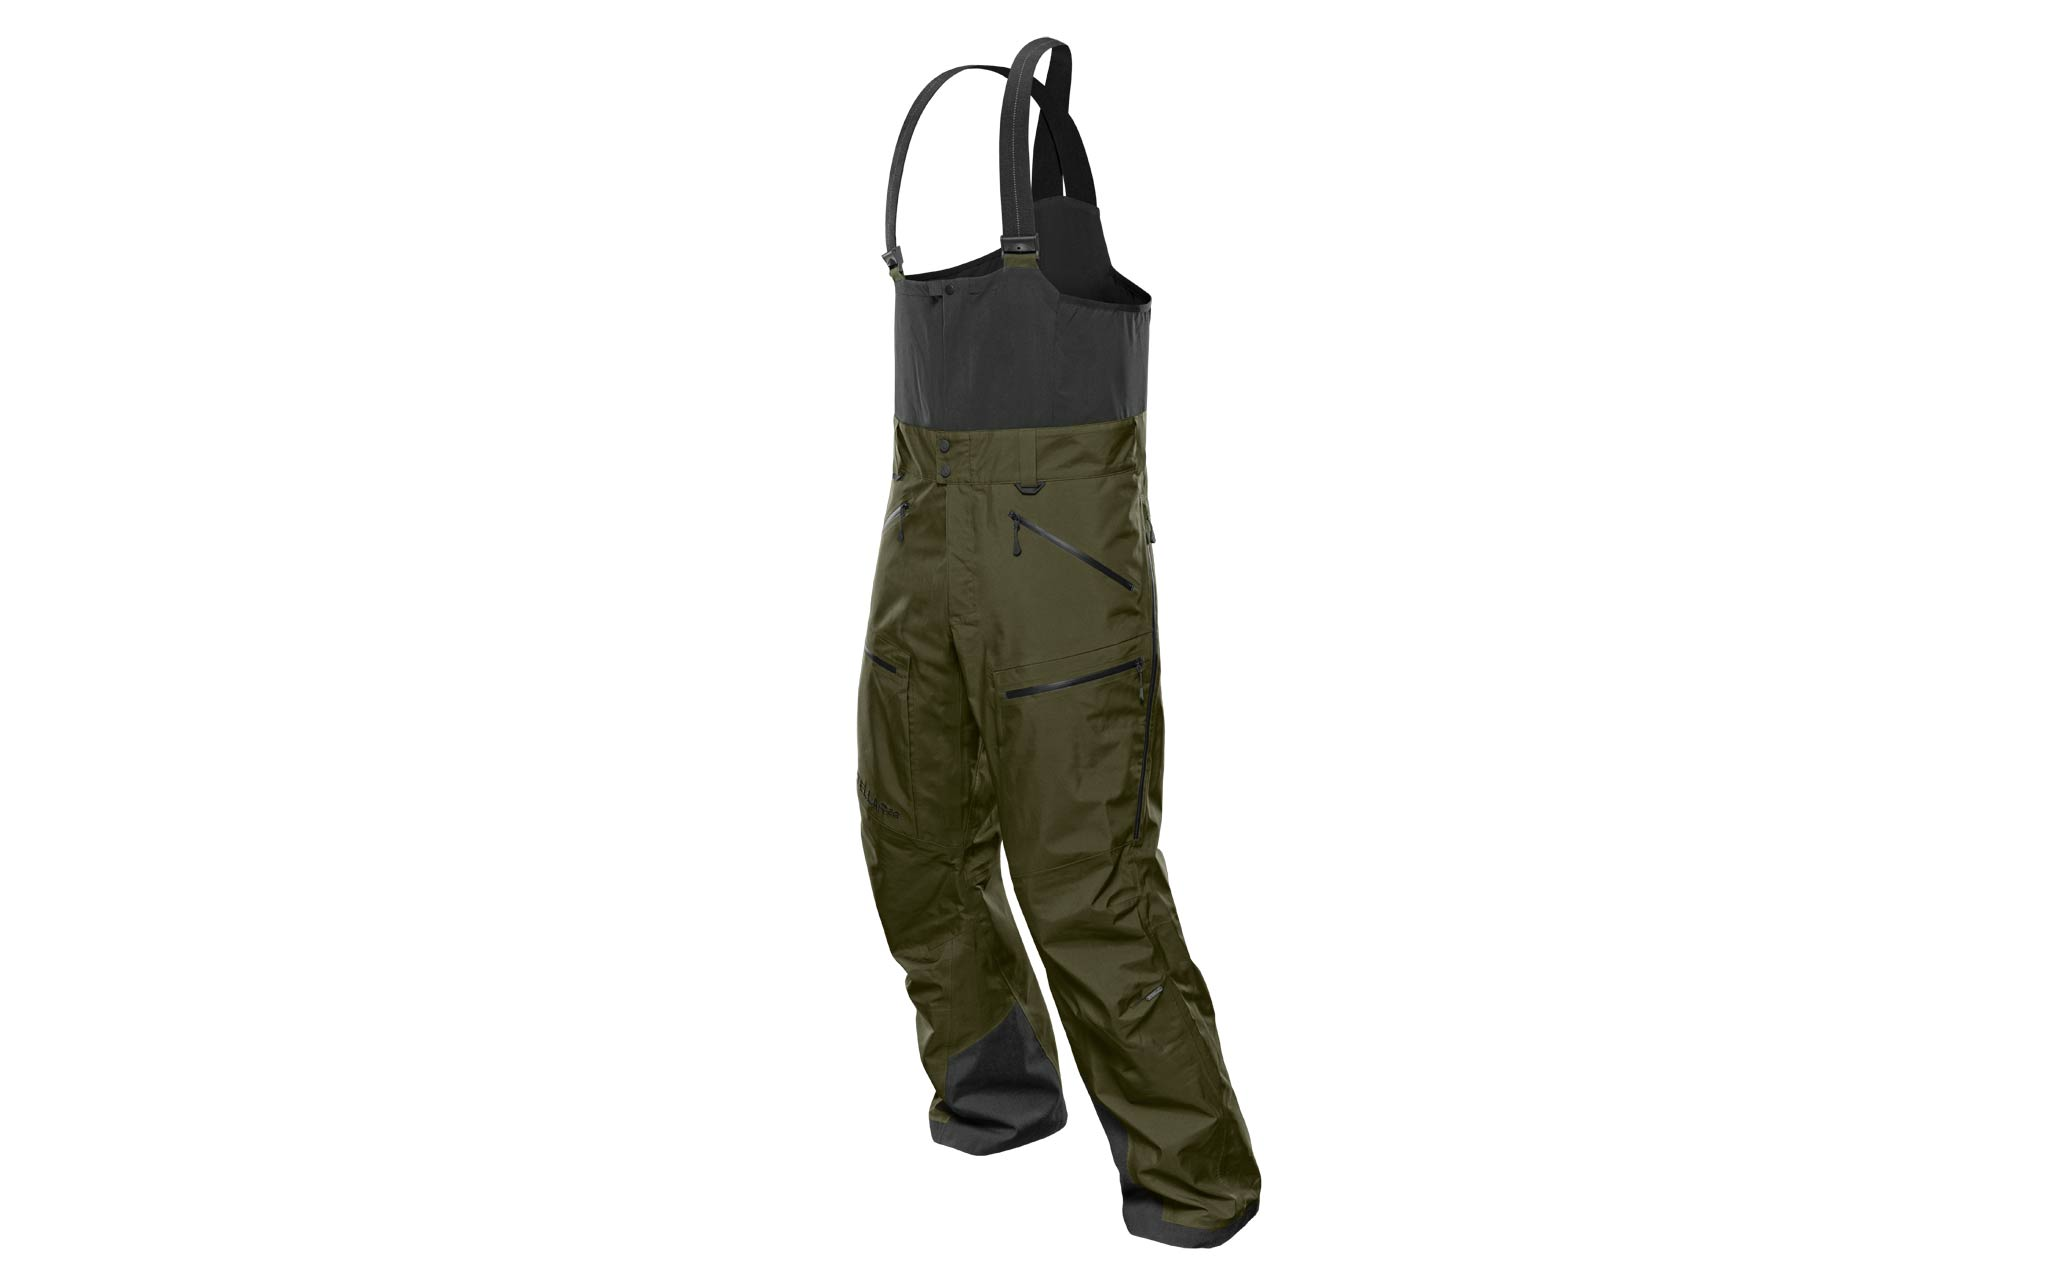 Stellar Equipment Free Shell Bib